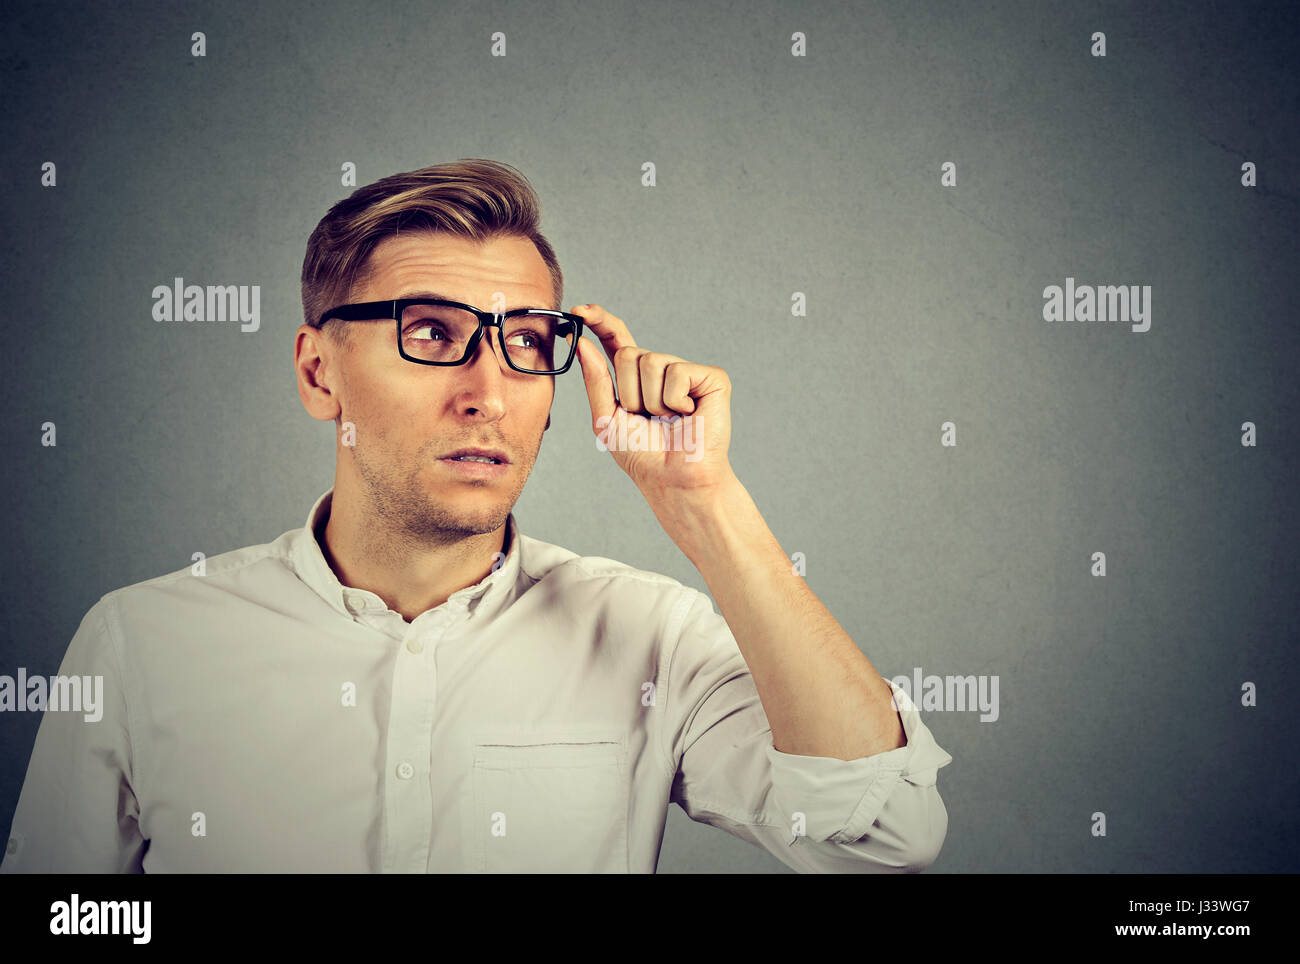 Side profile of a man in glasses - Stock Image